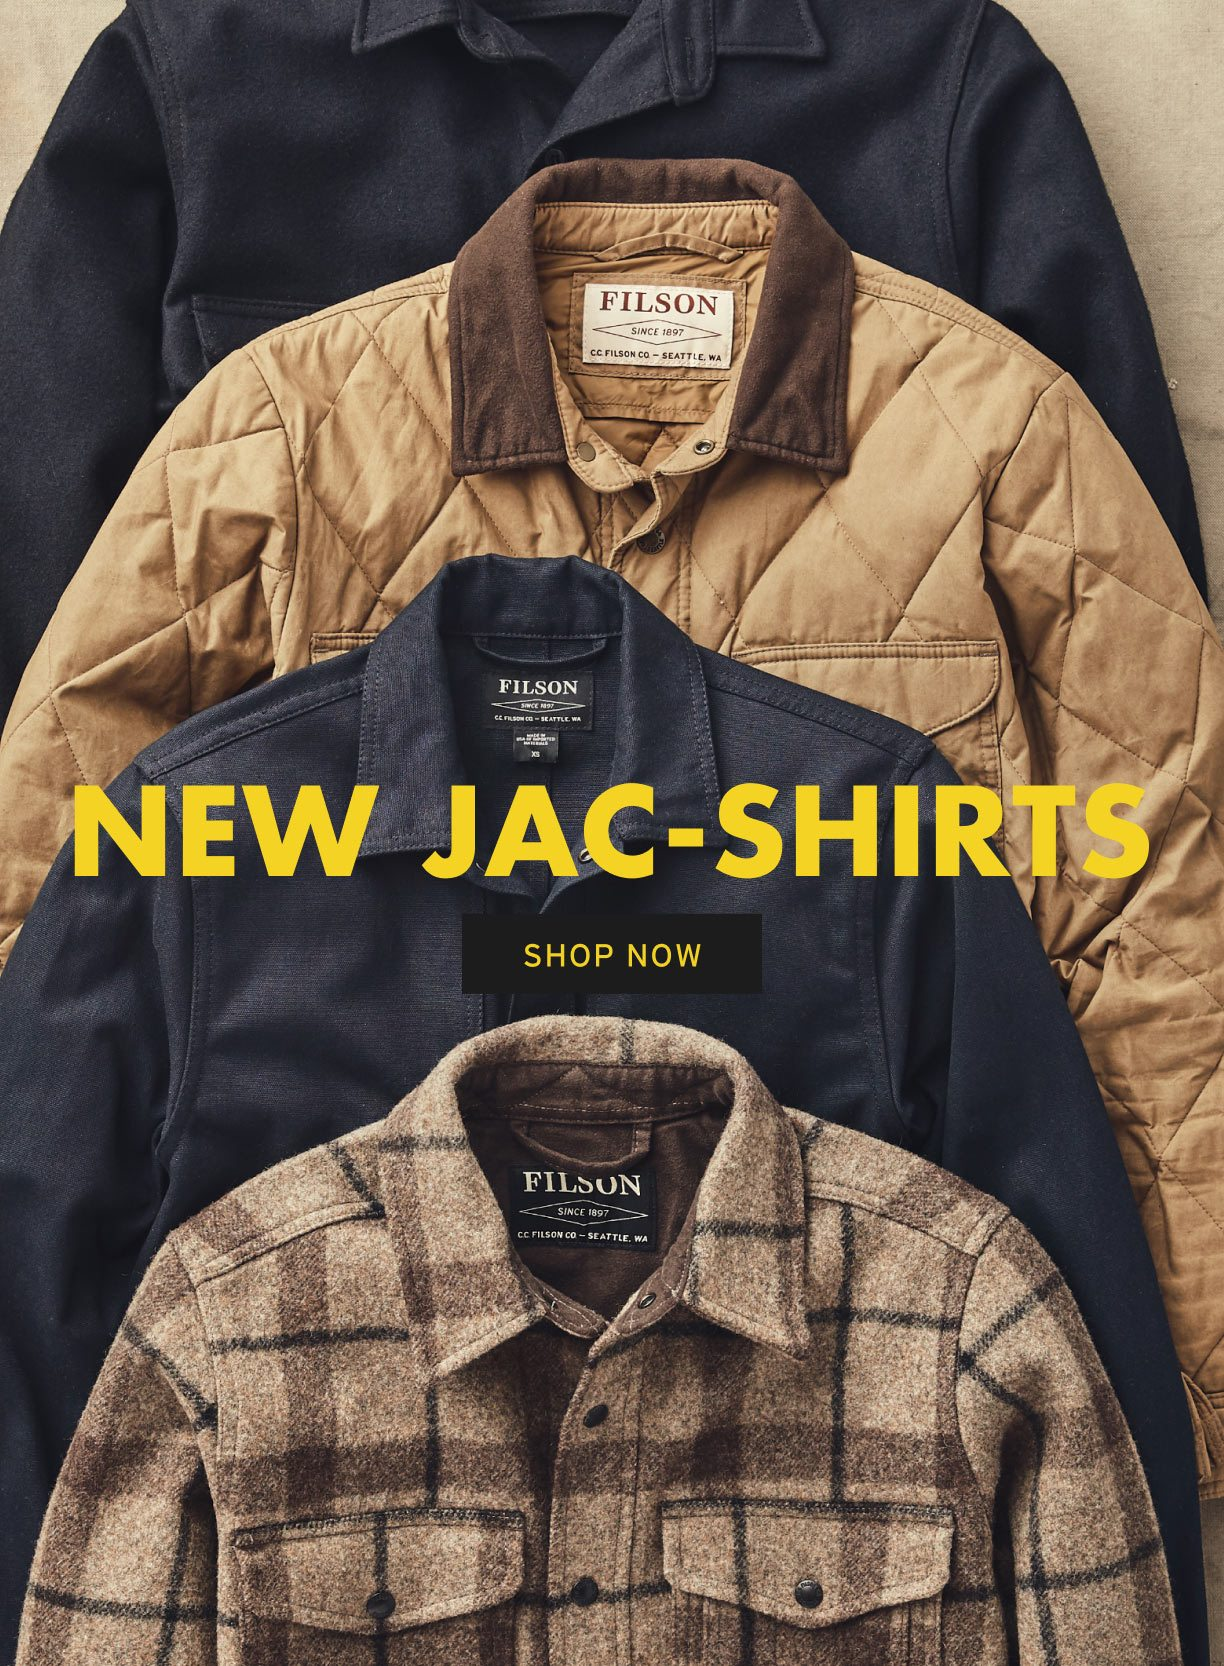 SHOP JAC-SHIRTS